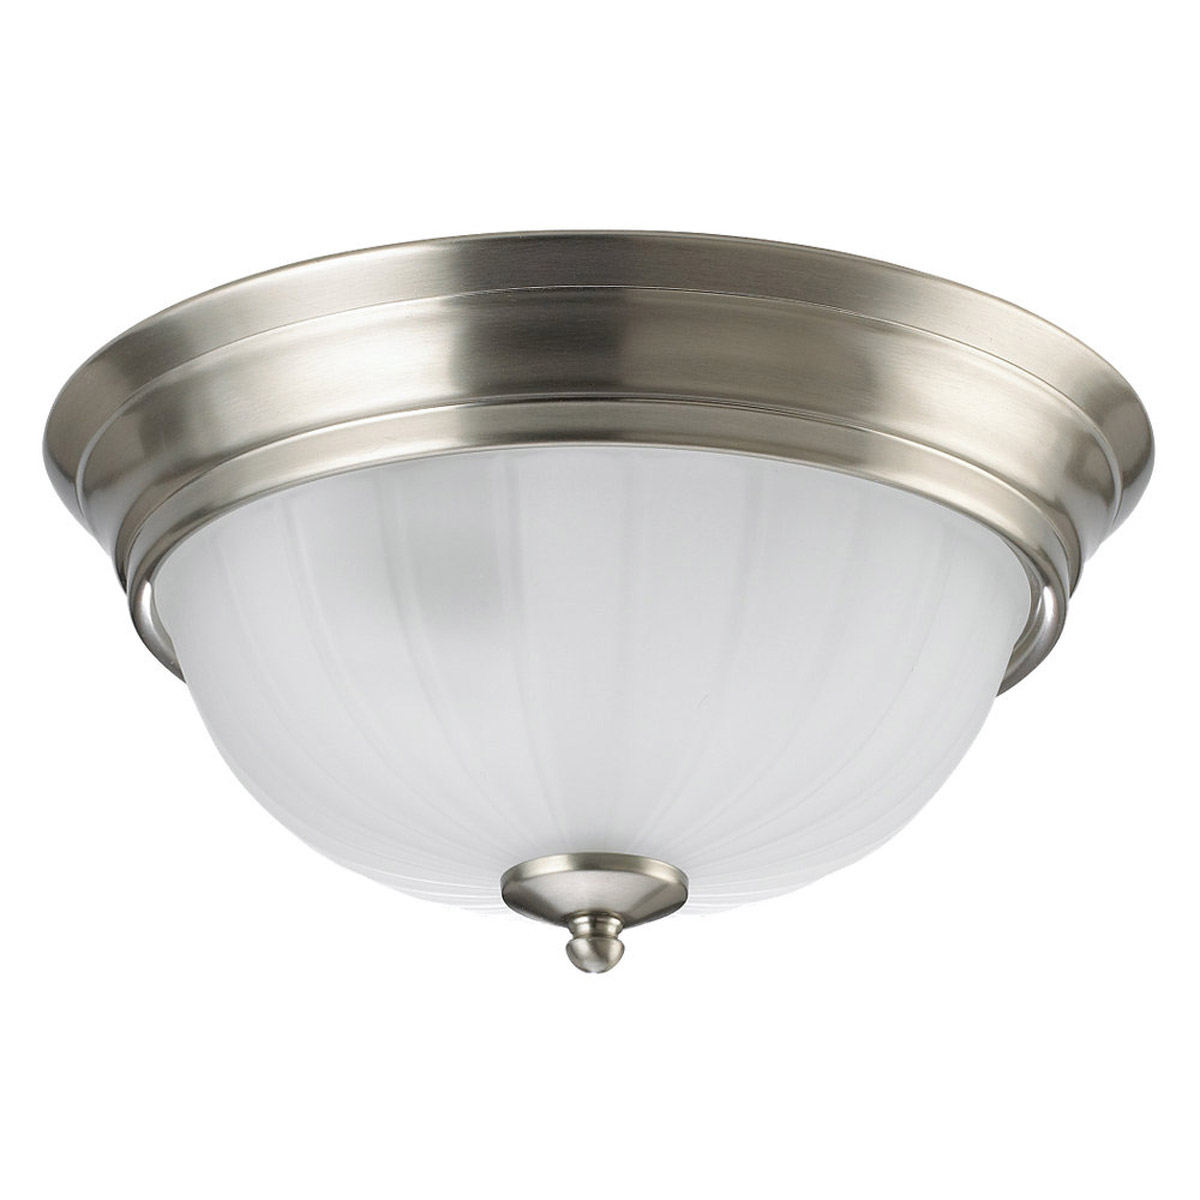 Sea Gull Lighting Linwood 3 Light Flush Mount in Brushed Nickel 7506-962